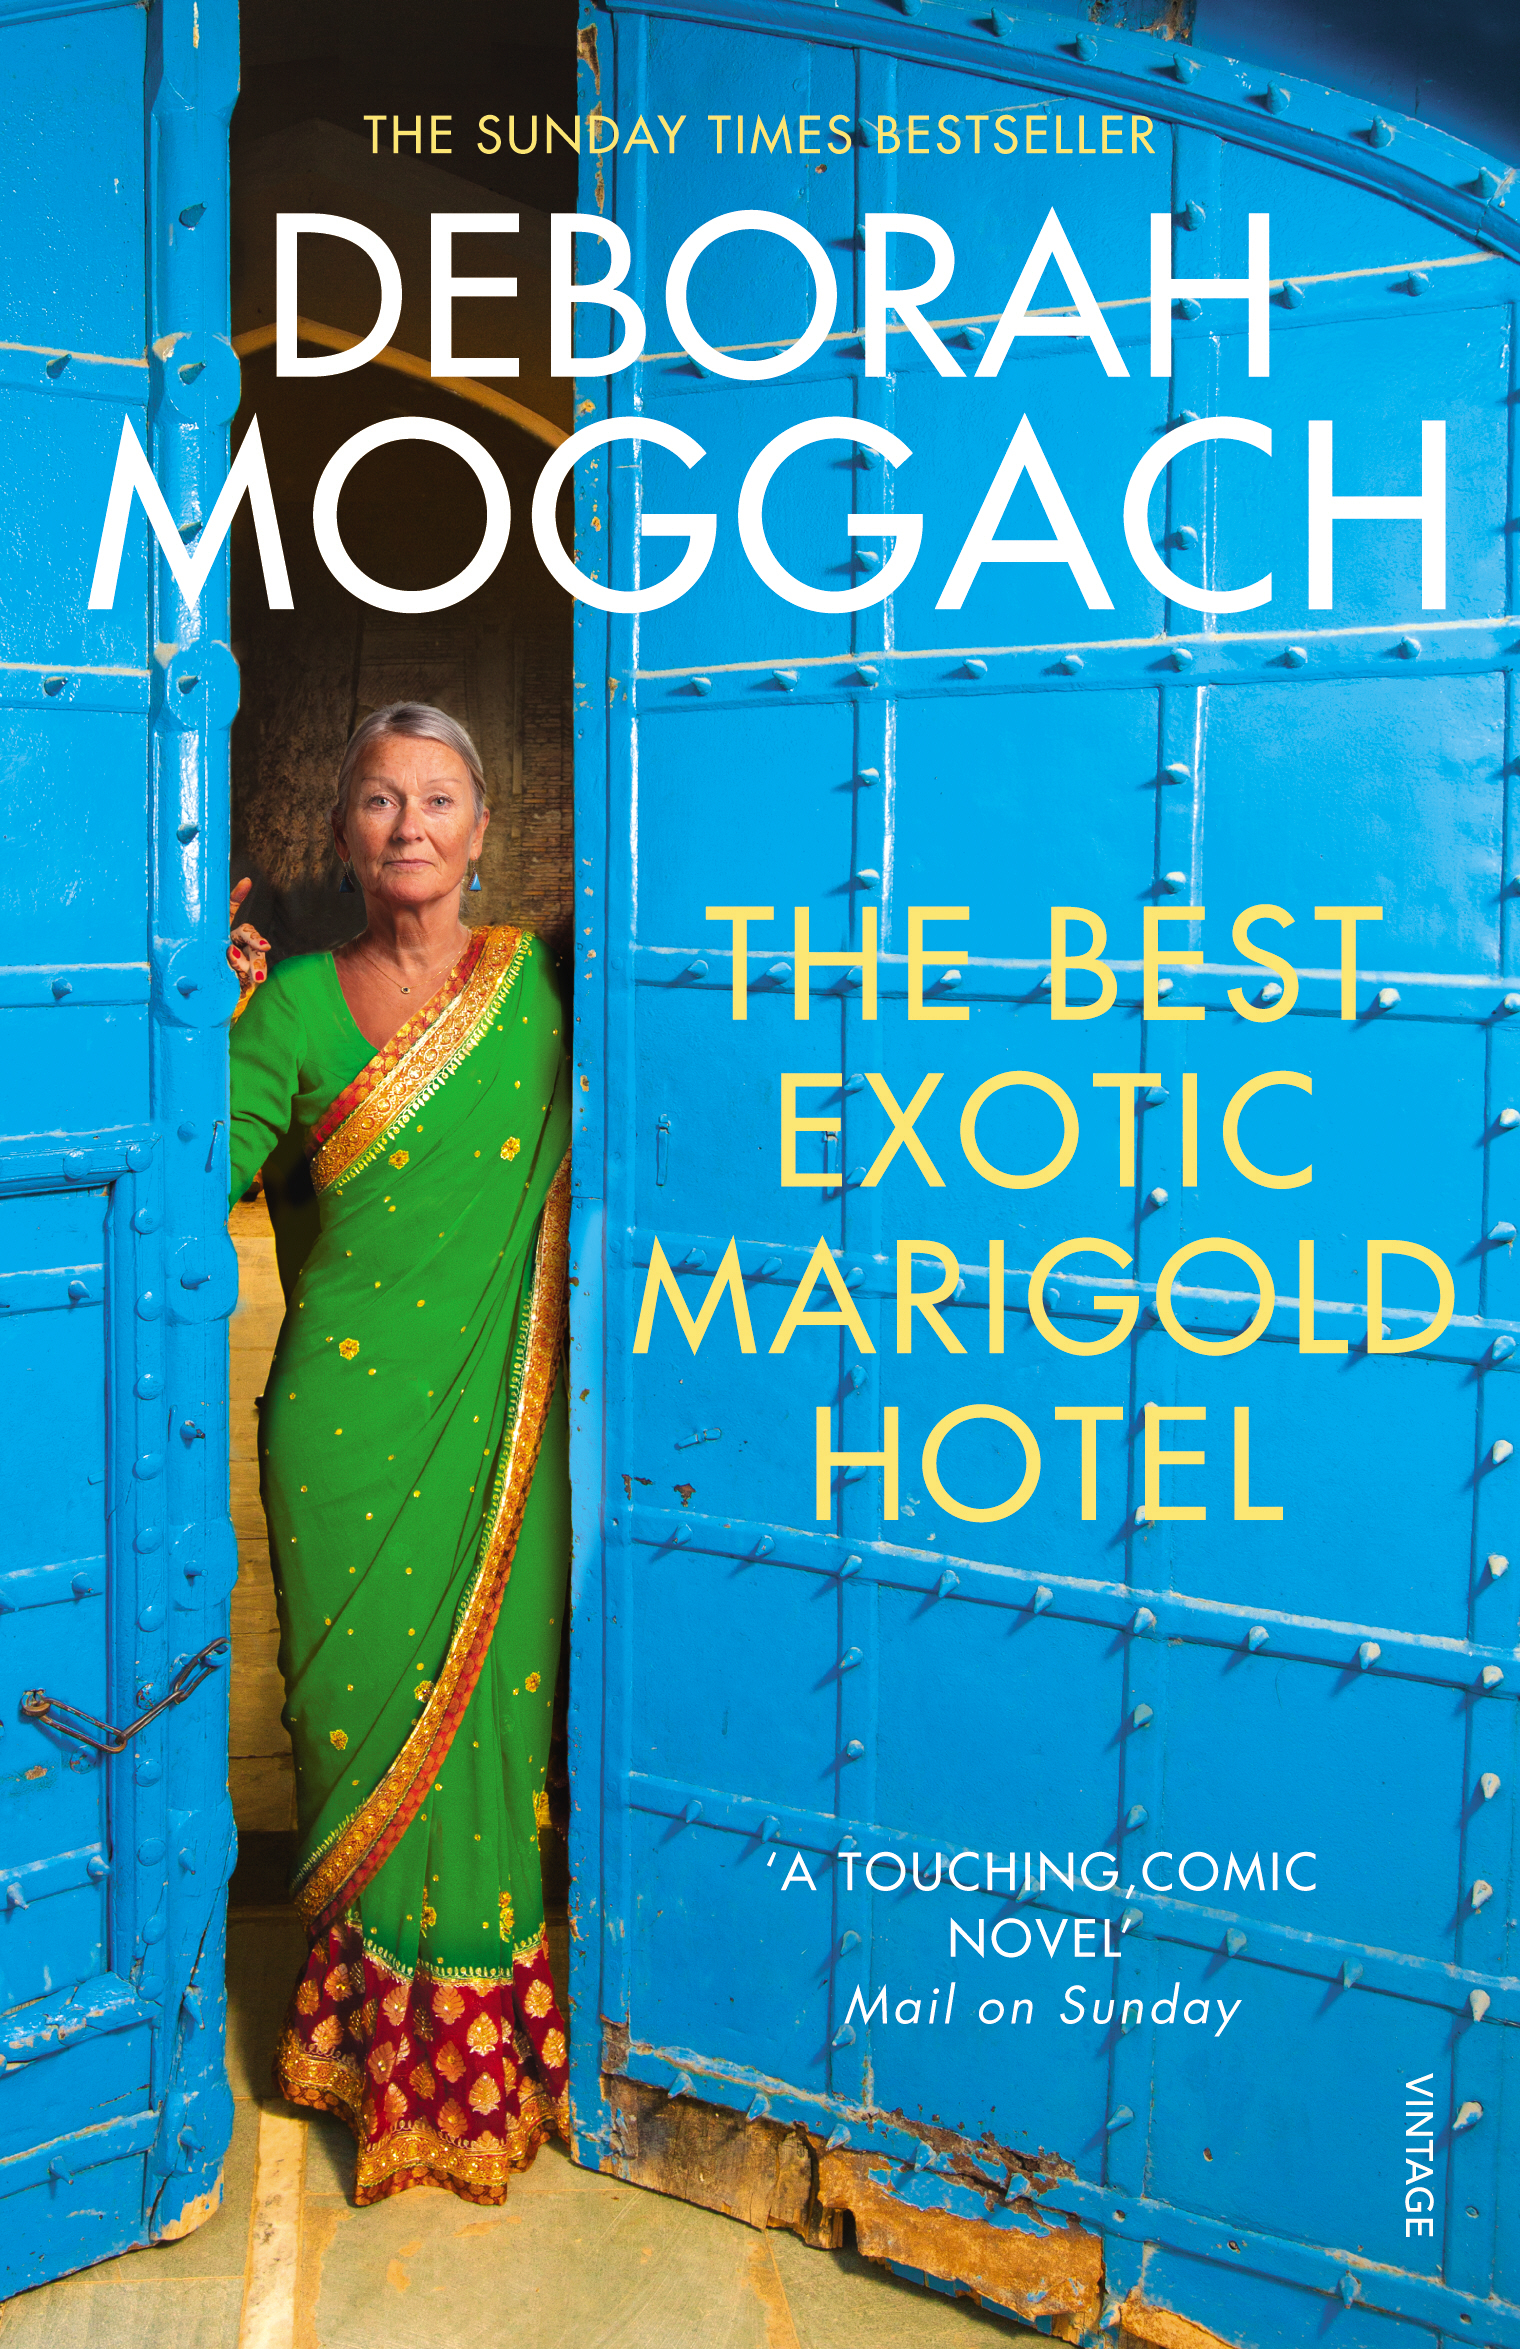 The Best Exotic Marigold Hotel written by Deborah Moggach will be broadcast starting Friday, February 27 at 1:00 PM